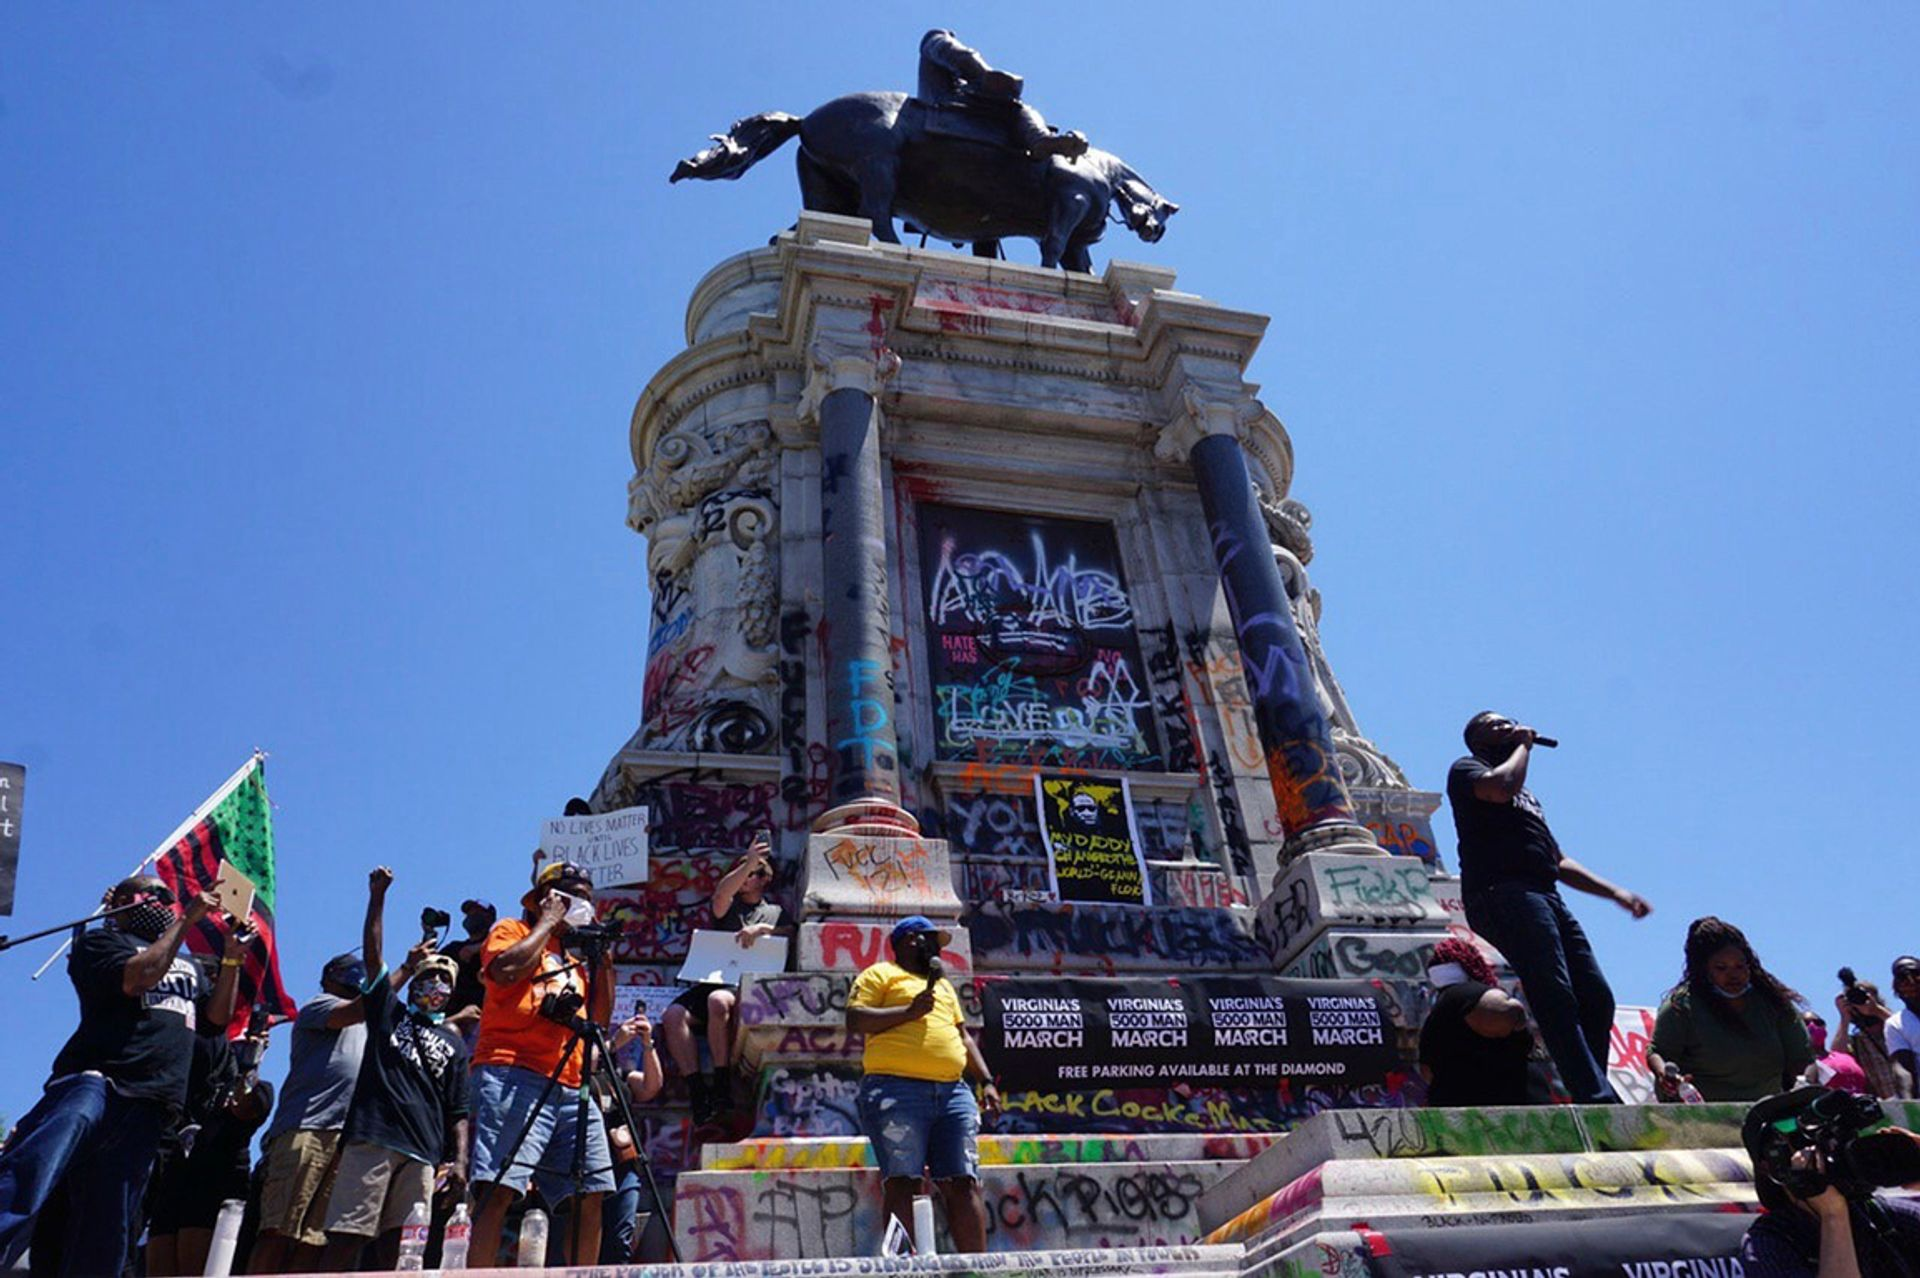 Protesters in Richmond, Virginia demonstrating against racial injustice and police brutality next to a statue of the Confederate general Robert E. Lee Artur Gabdrahmanov/Sputnik via Associated Press